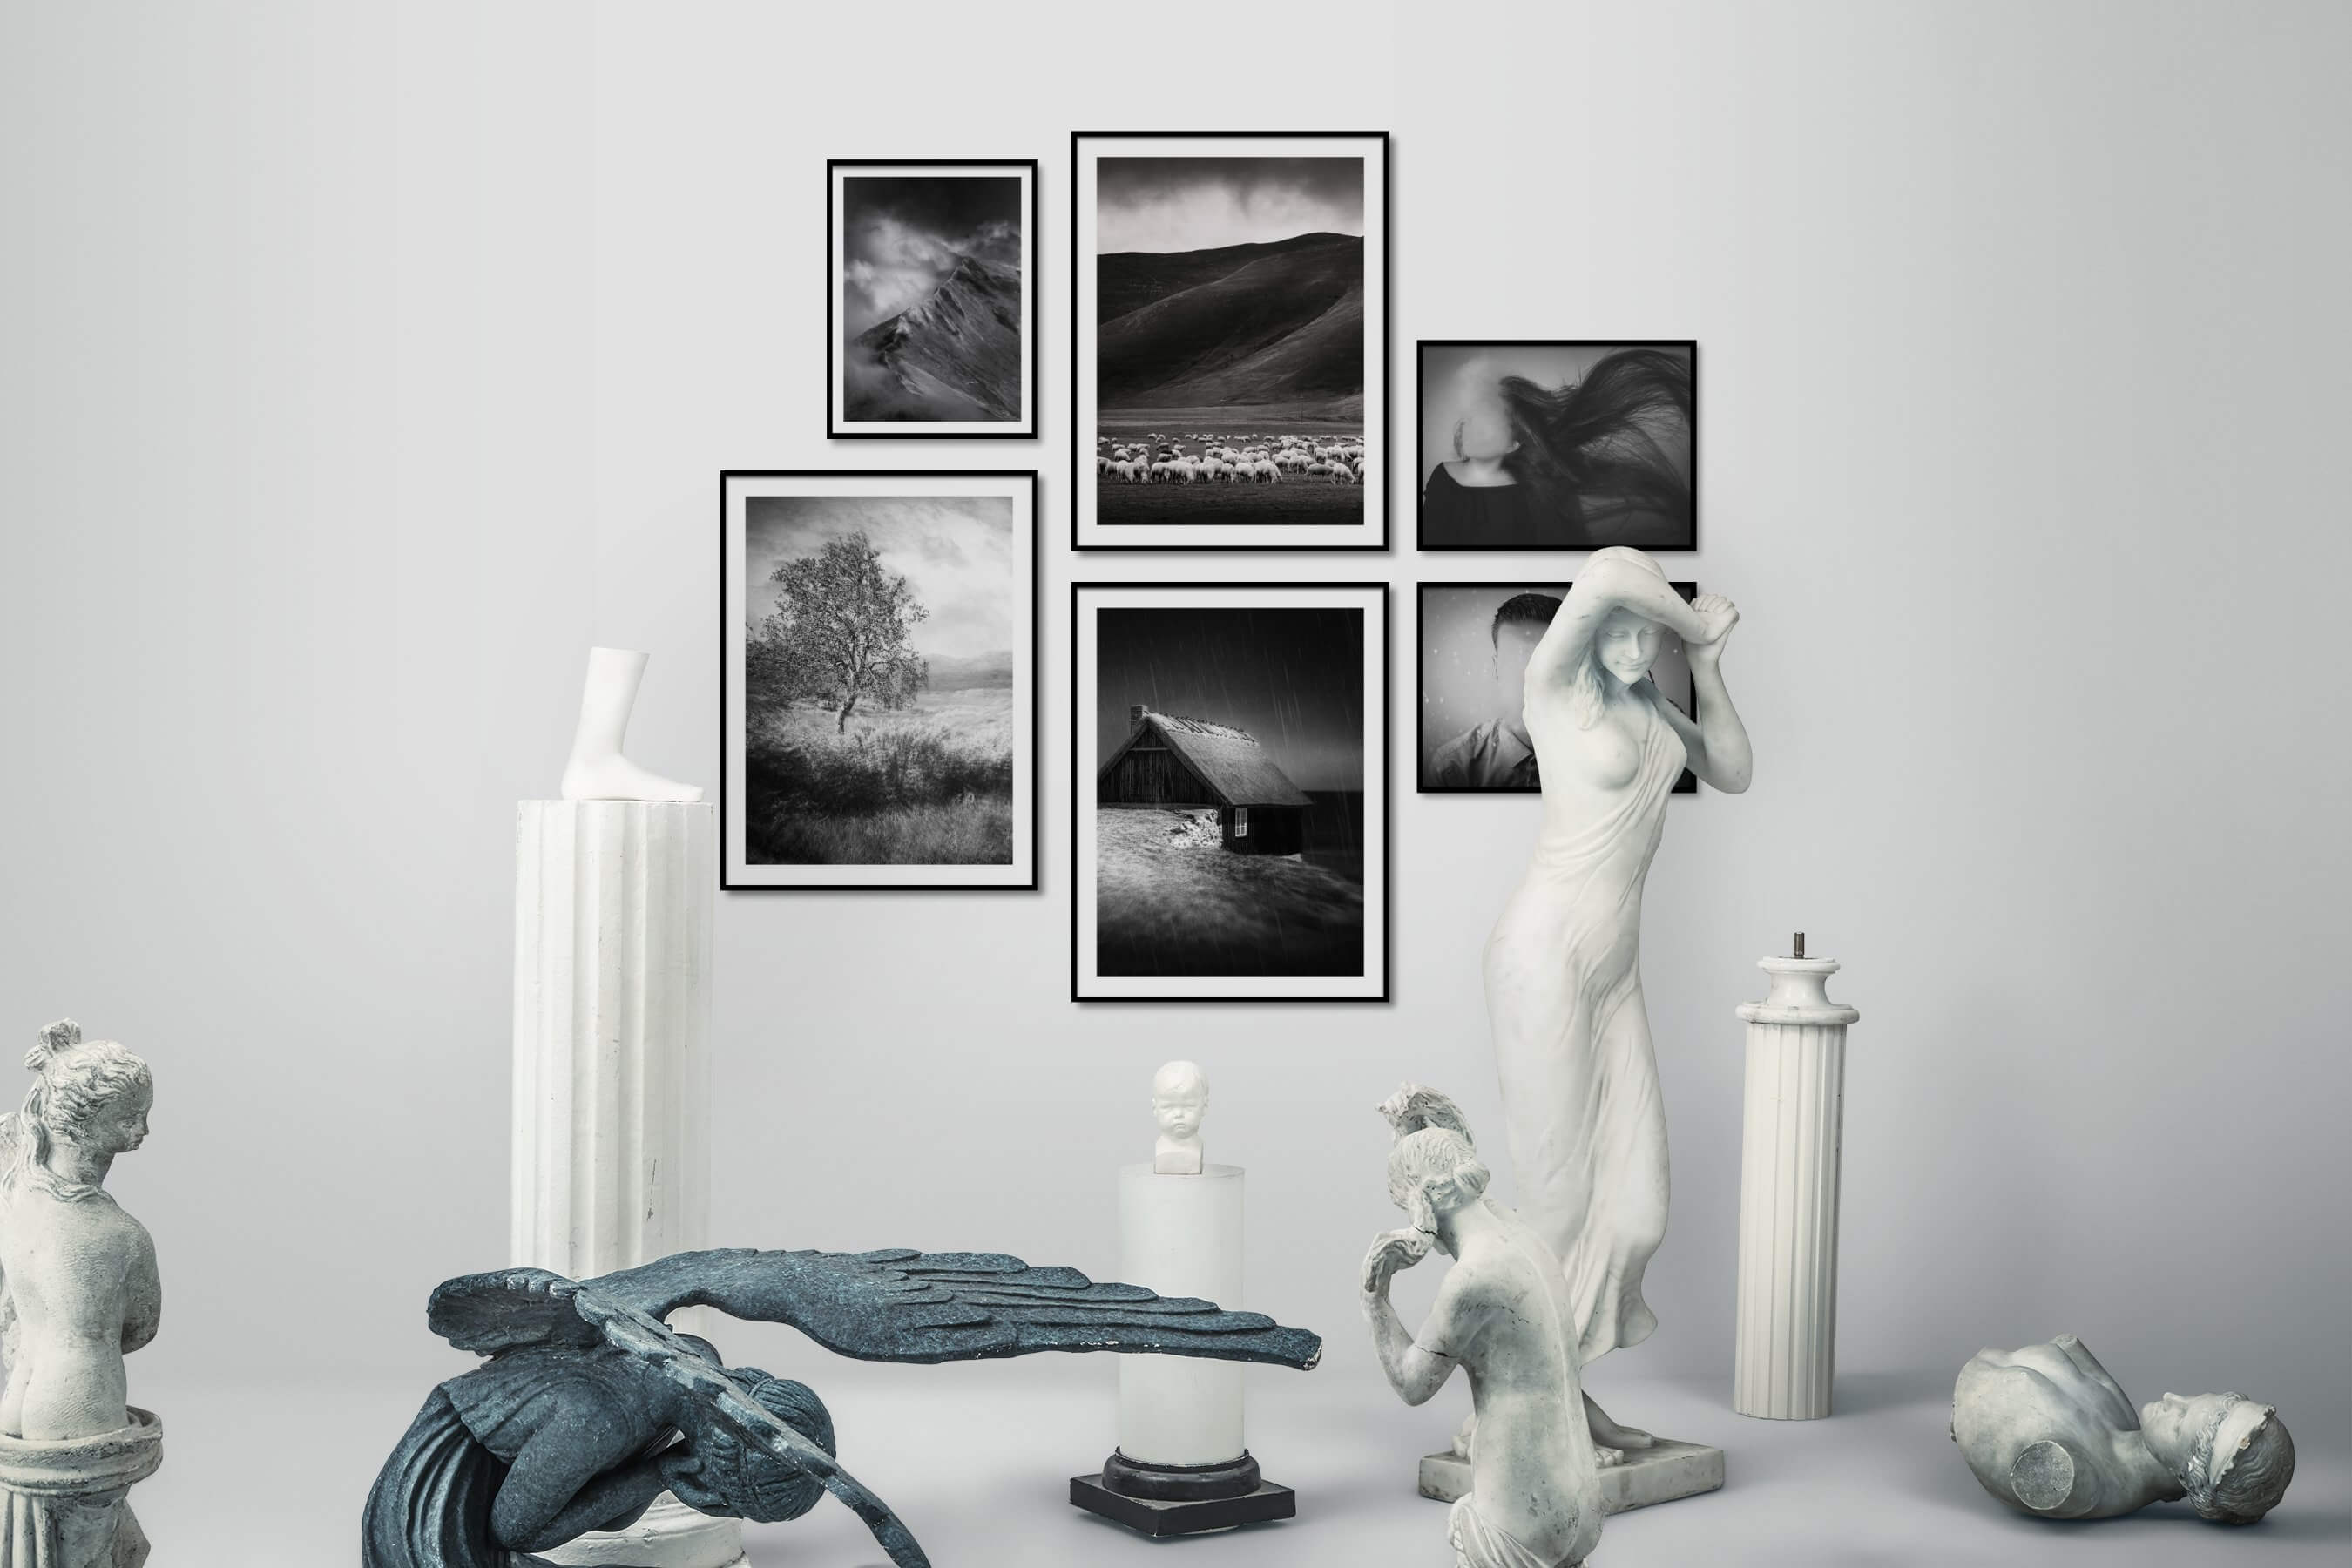 Gallery wall idea with six framed pictures arranged on a wall depicting Black & White, Nature, Animals, Country Life, and Artsy